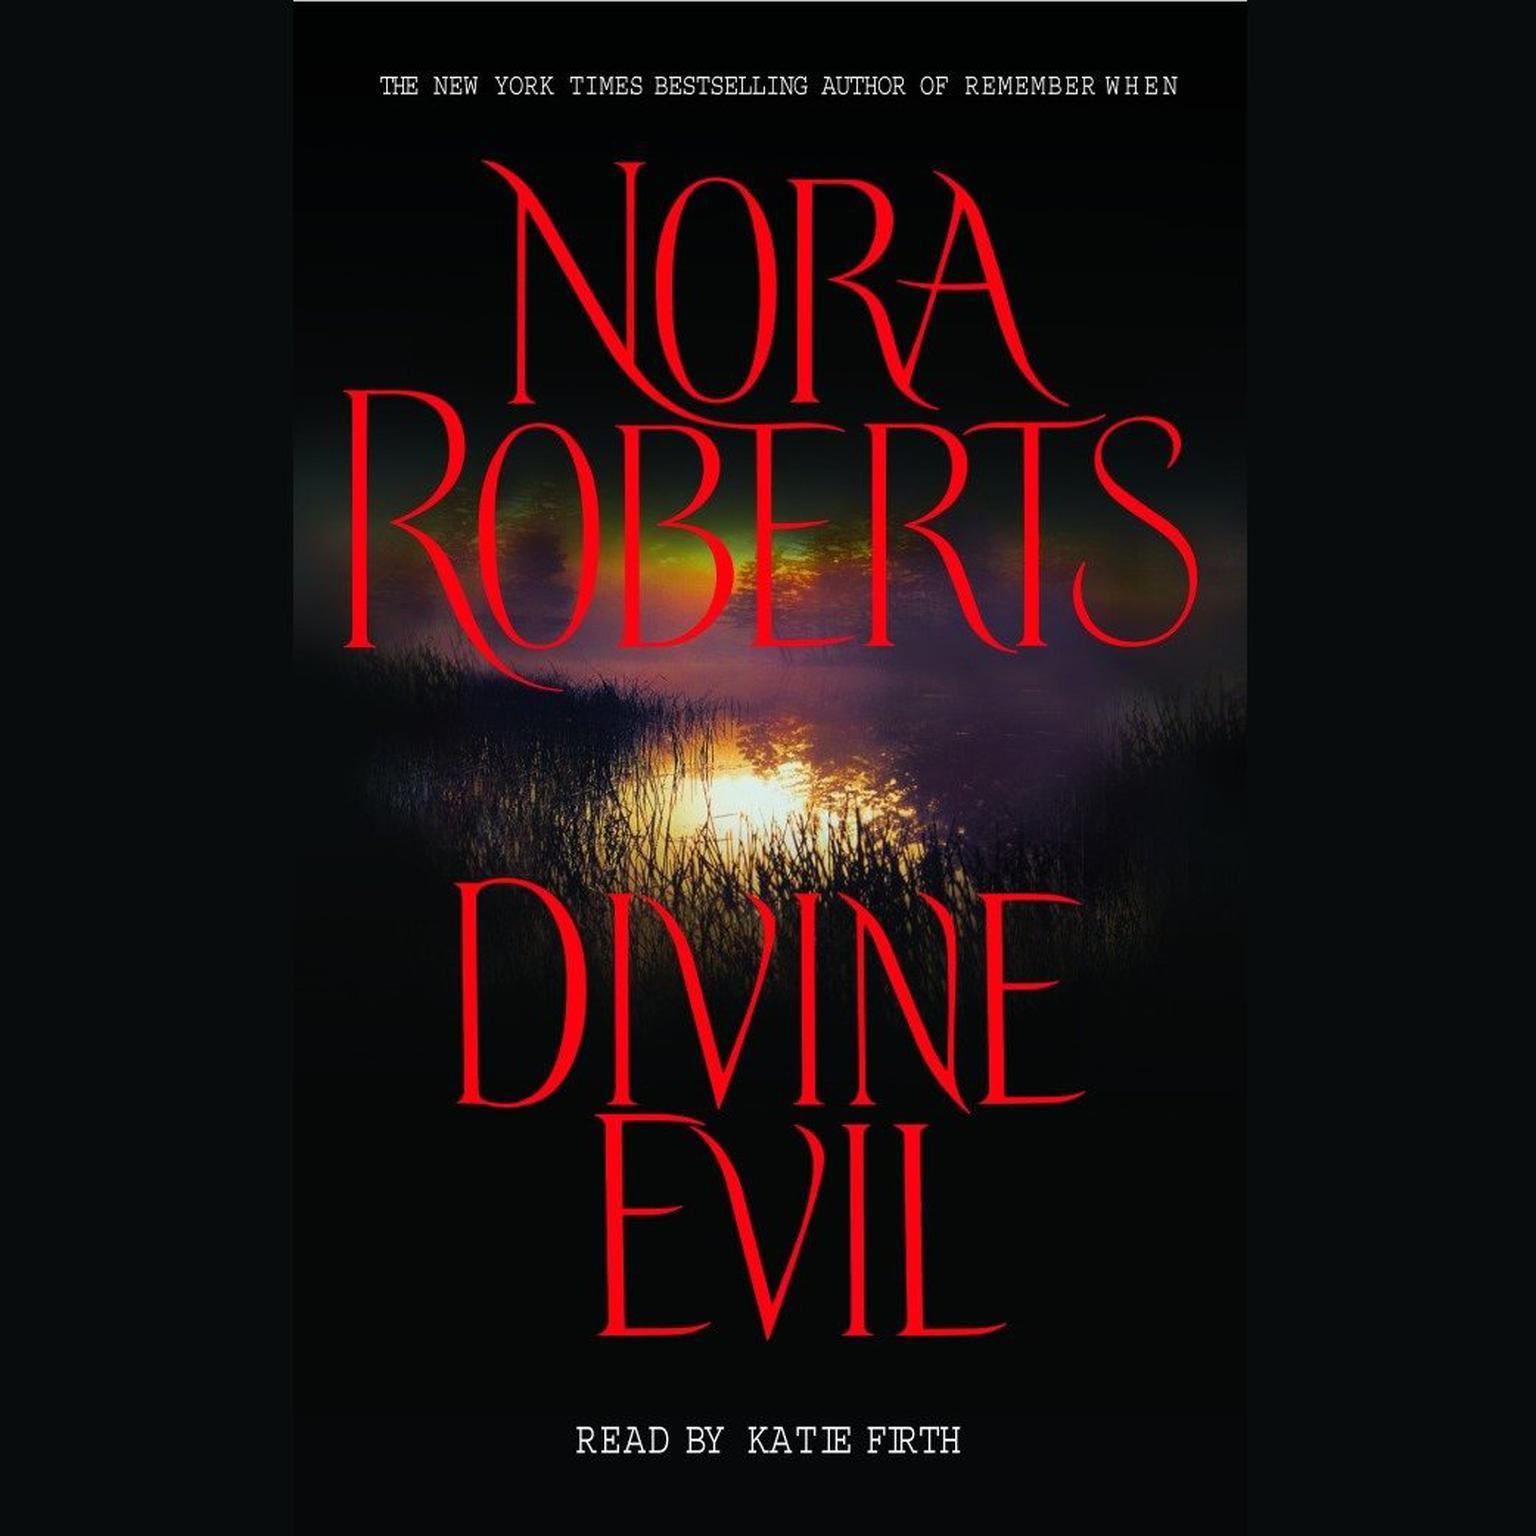 Printable Divine Evil Audiobook Cover Art